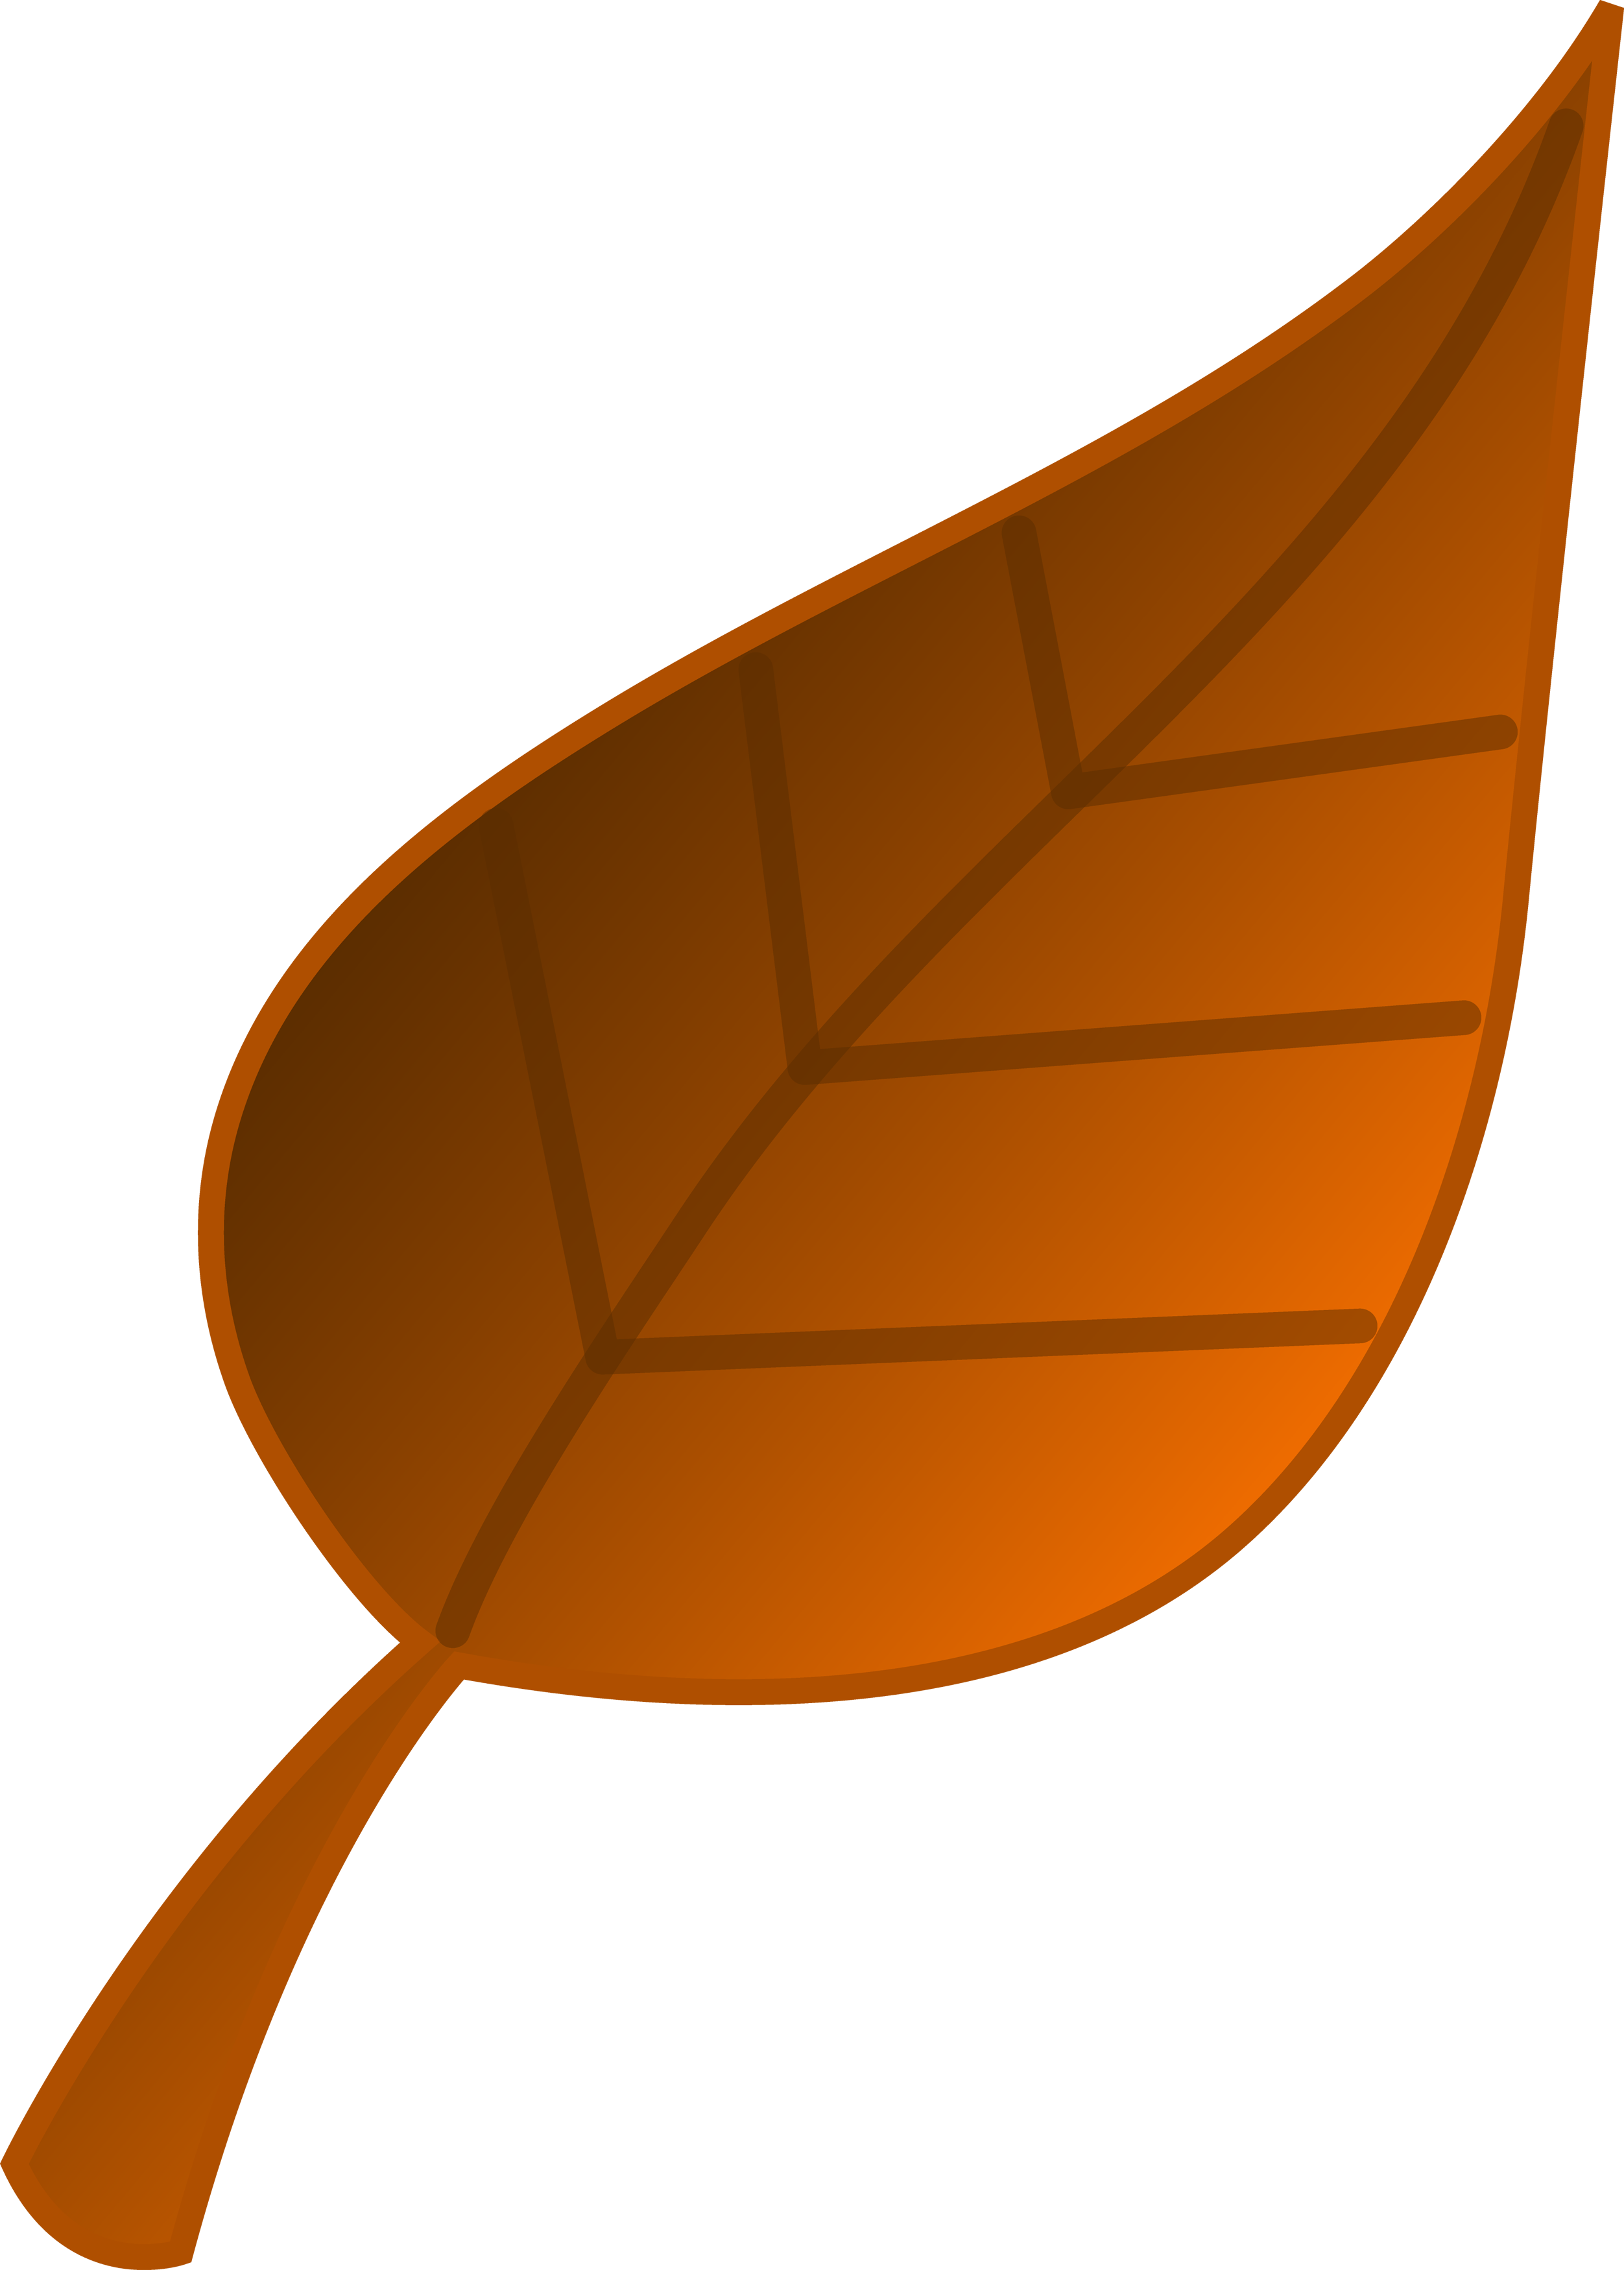 Leaves clipart orange leaf Autumn%20Tree%20Clip%20Art Clipart Brown Autumn%20Leaf%20Clip%20Art Leaf